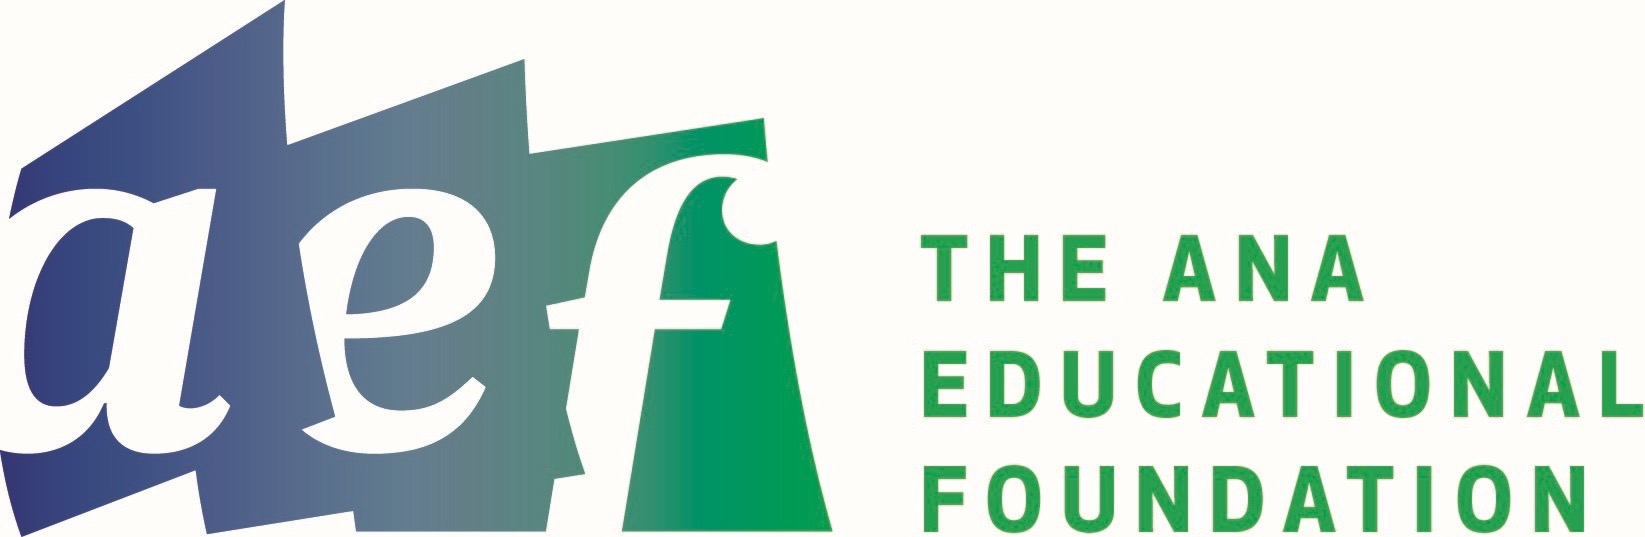 The ANA Educational Foundation Logo